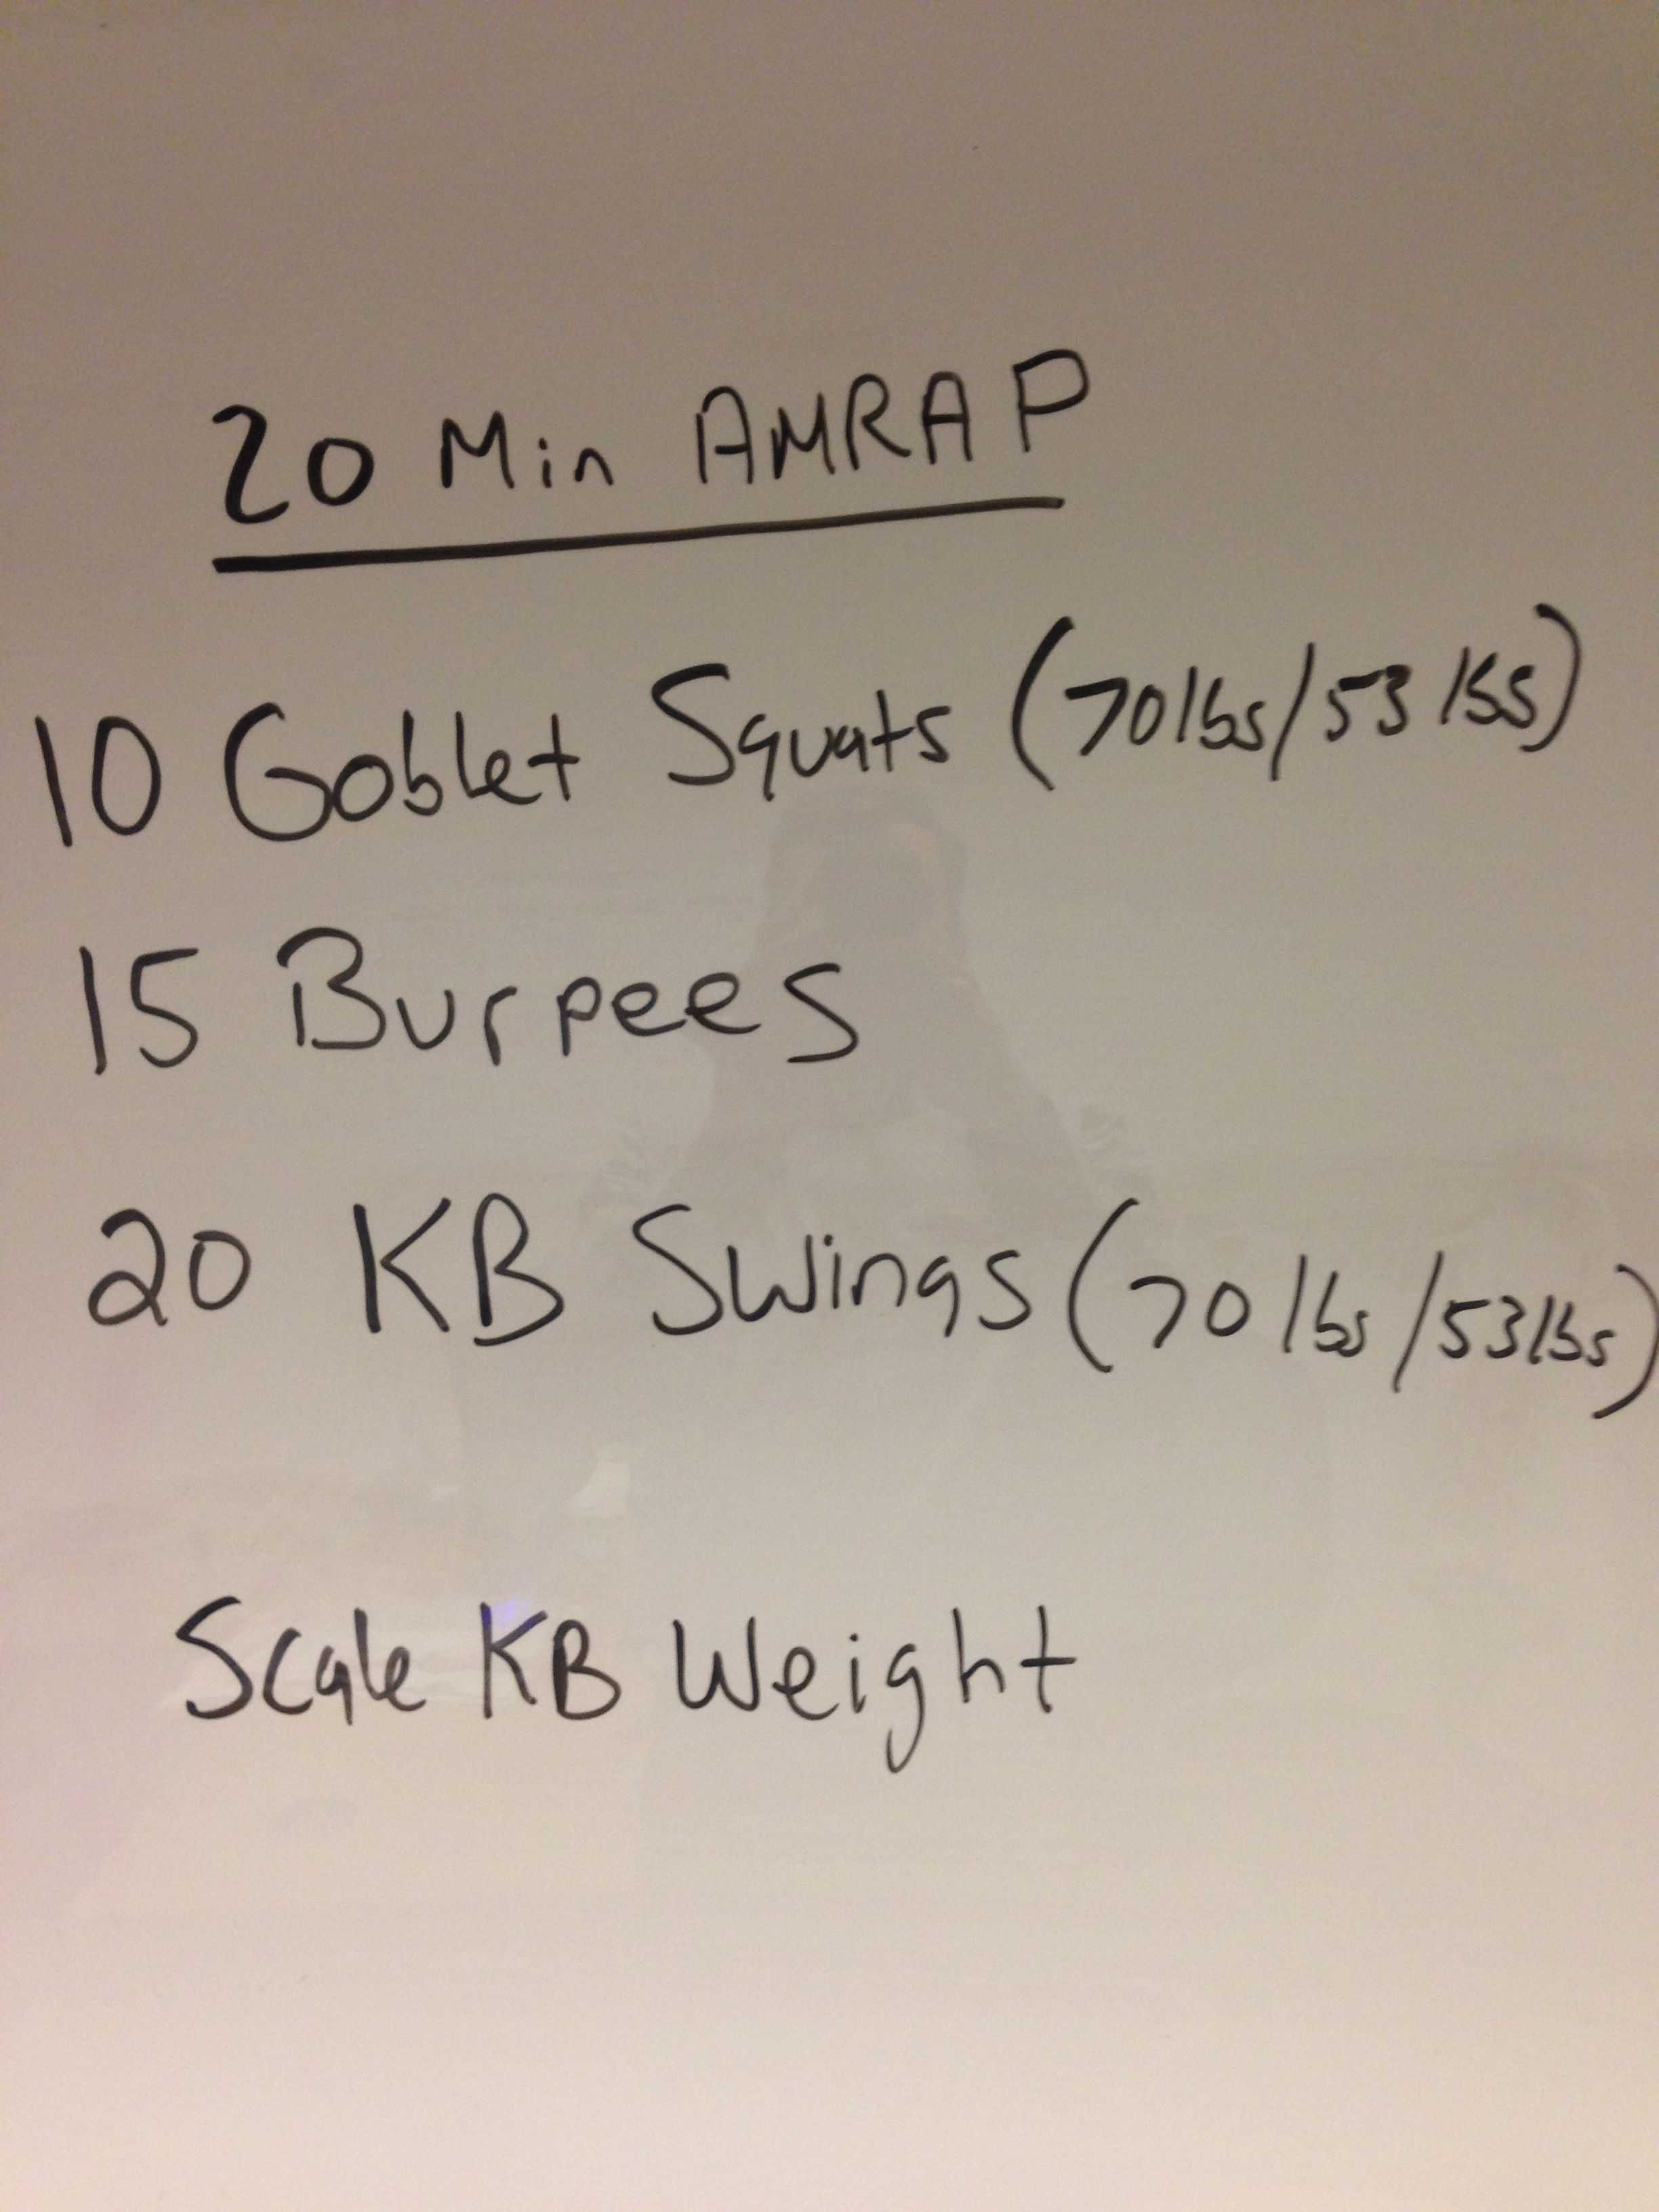 Pin By Allyson Strout On Crossfit Wod Crossfit Amrap Workout Kettlebell Training